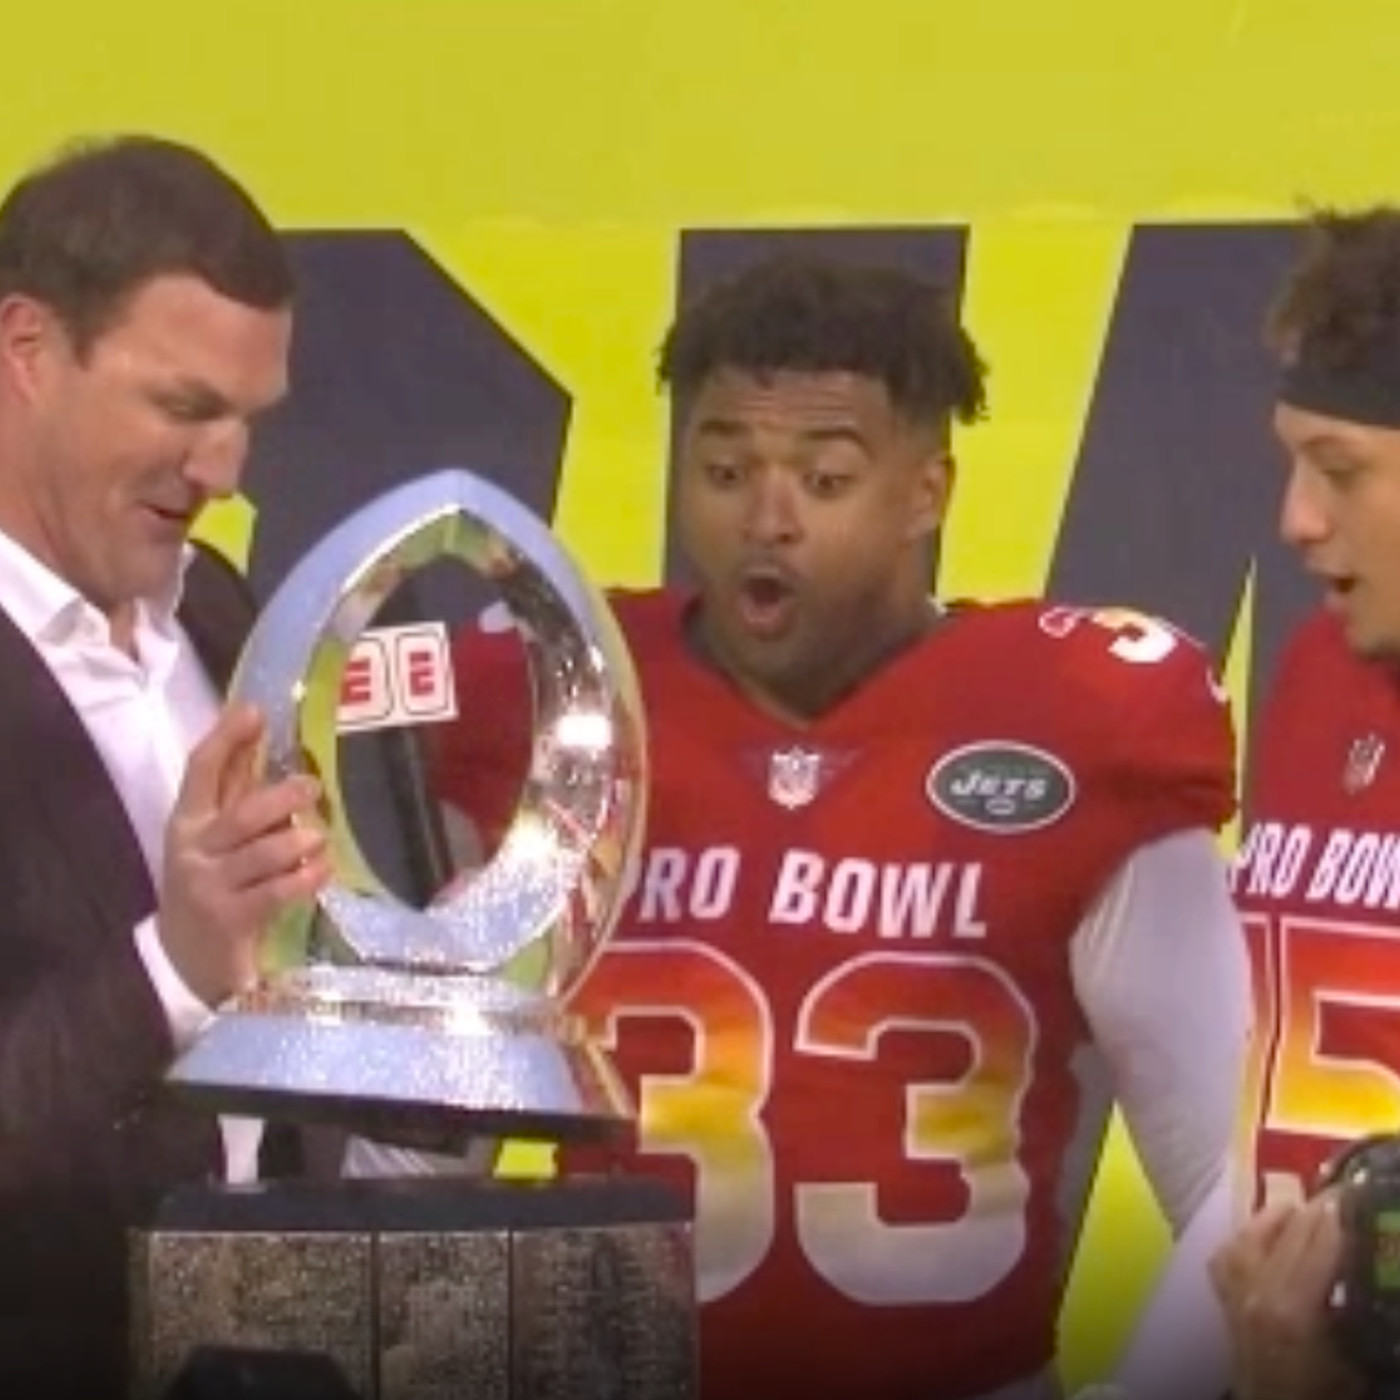 186ec725219 Jason Witten broke the Pro Bowl trophy in half, a fitting end to his awful  year at ESPN